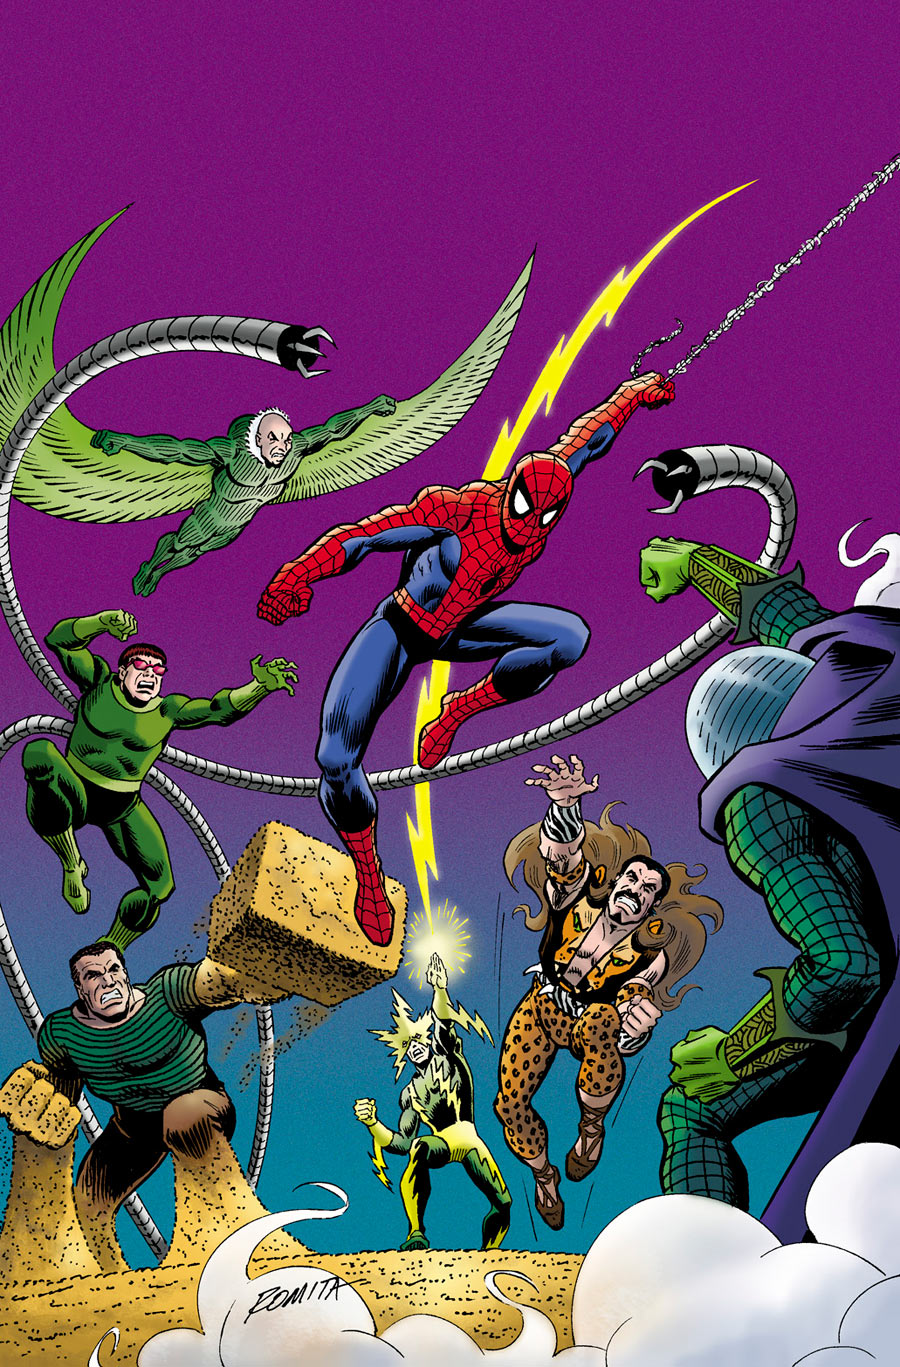 sinister-six-movie-villain-line-up-photo-tease